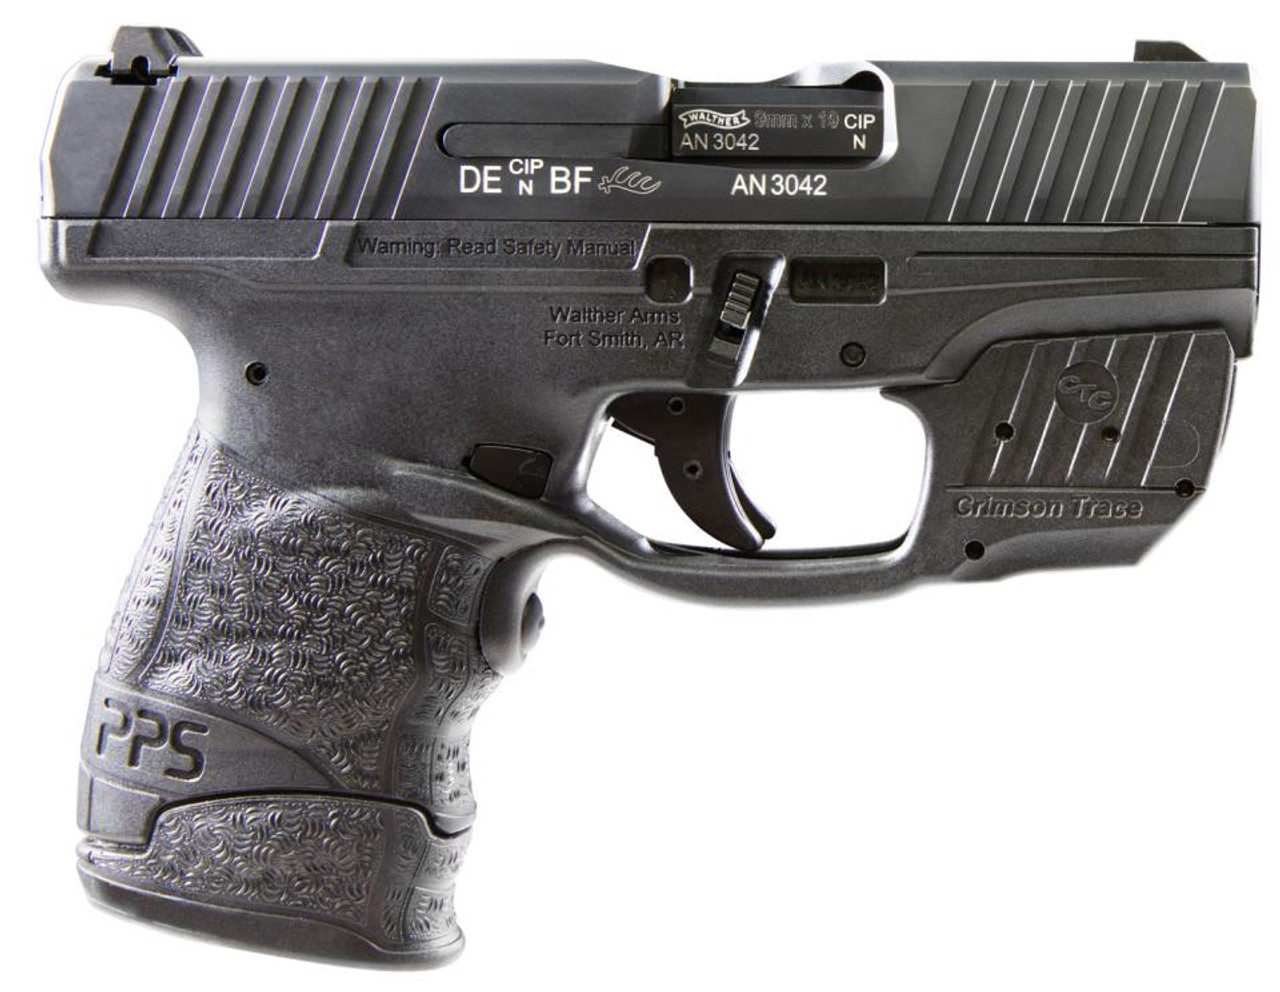 walther pps m2 9x19 wa with crimson trace laser 2 mags 9mm impact rh impactguns com 9 Millimeter Handguns P PPS vs Glock 26